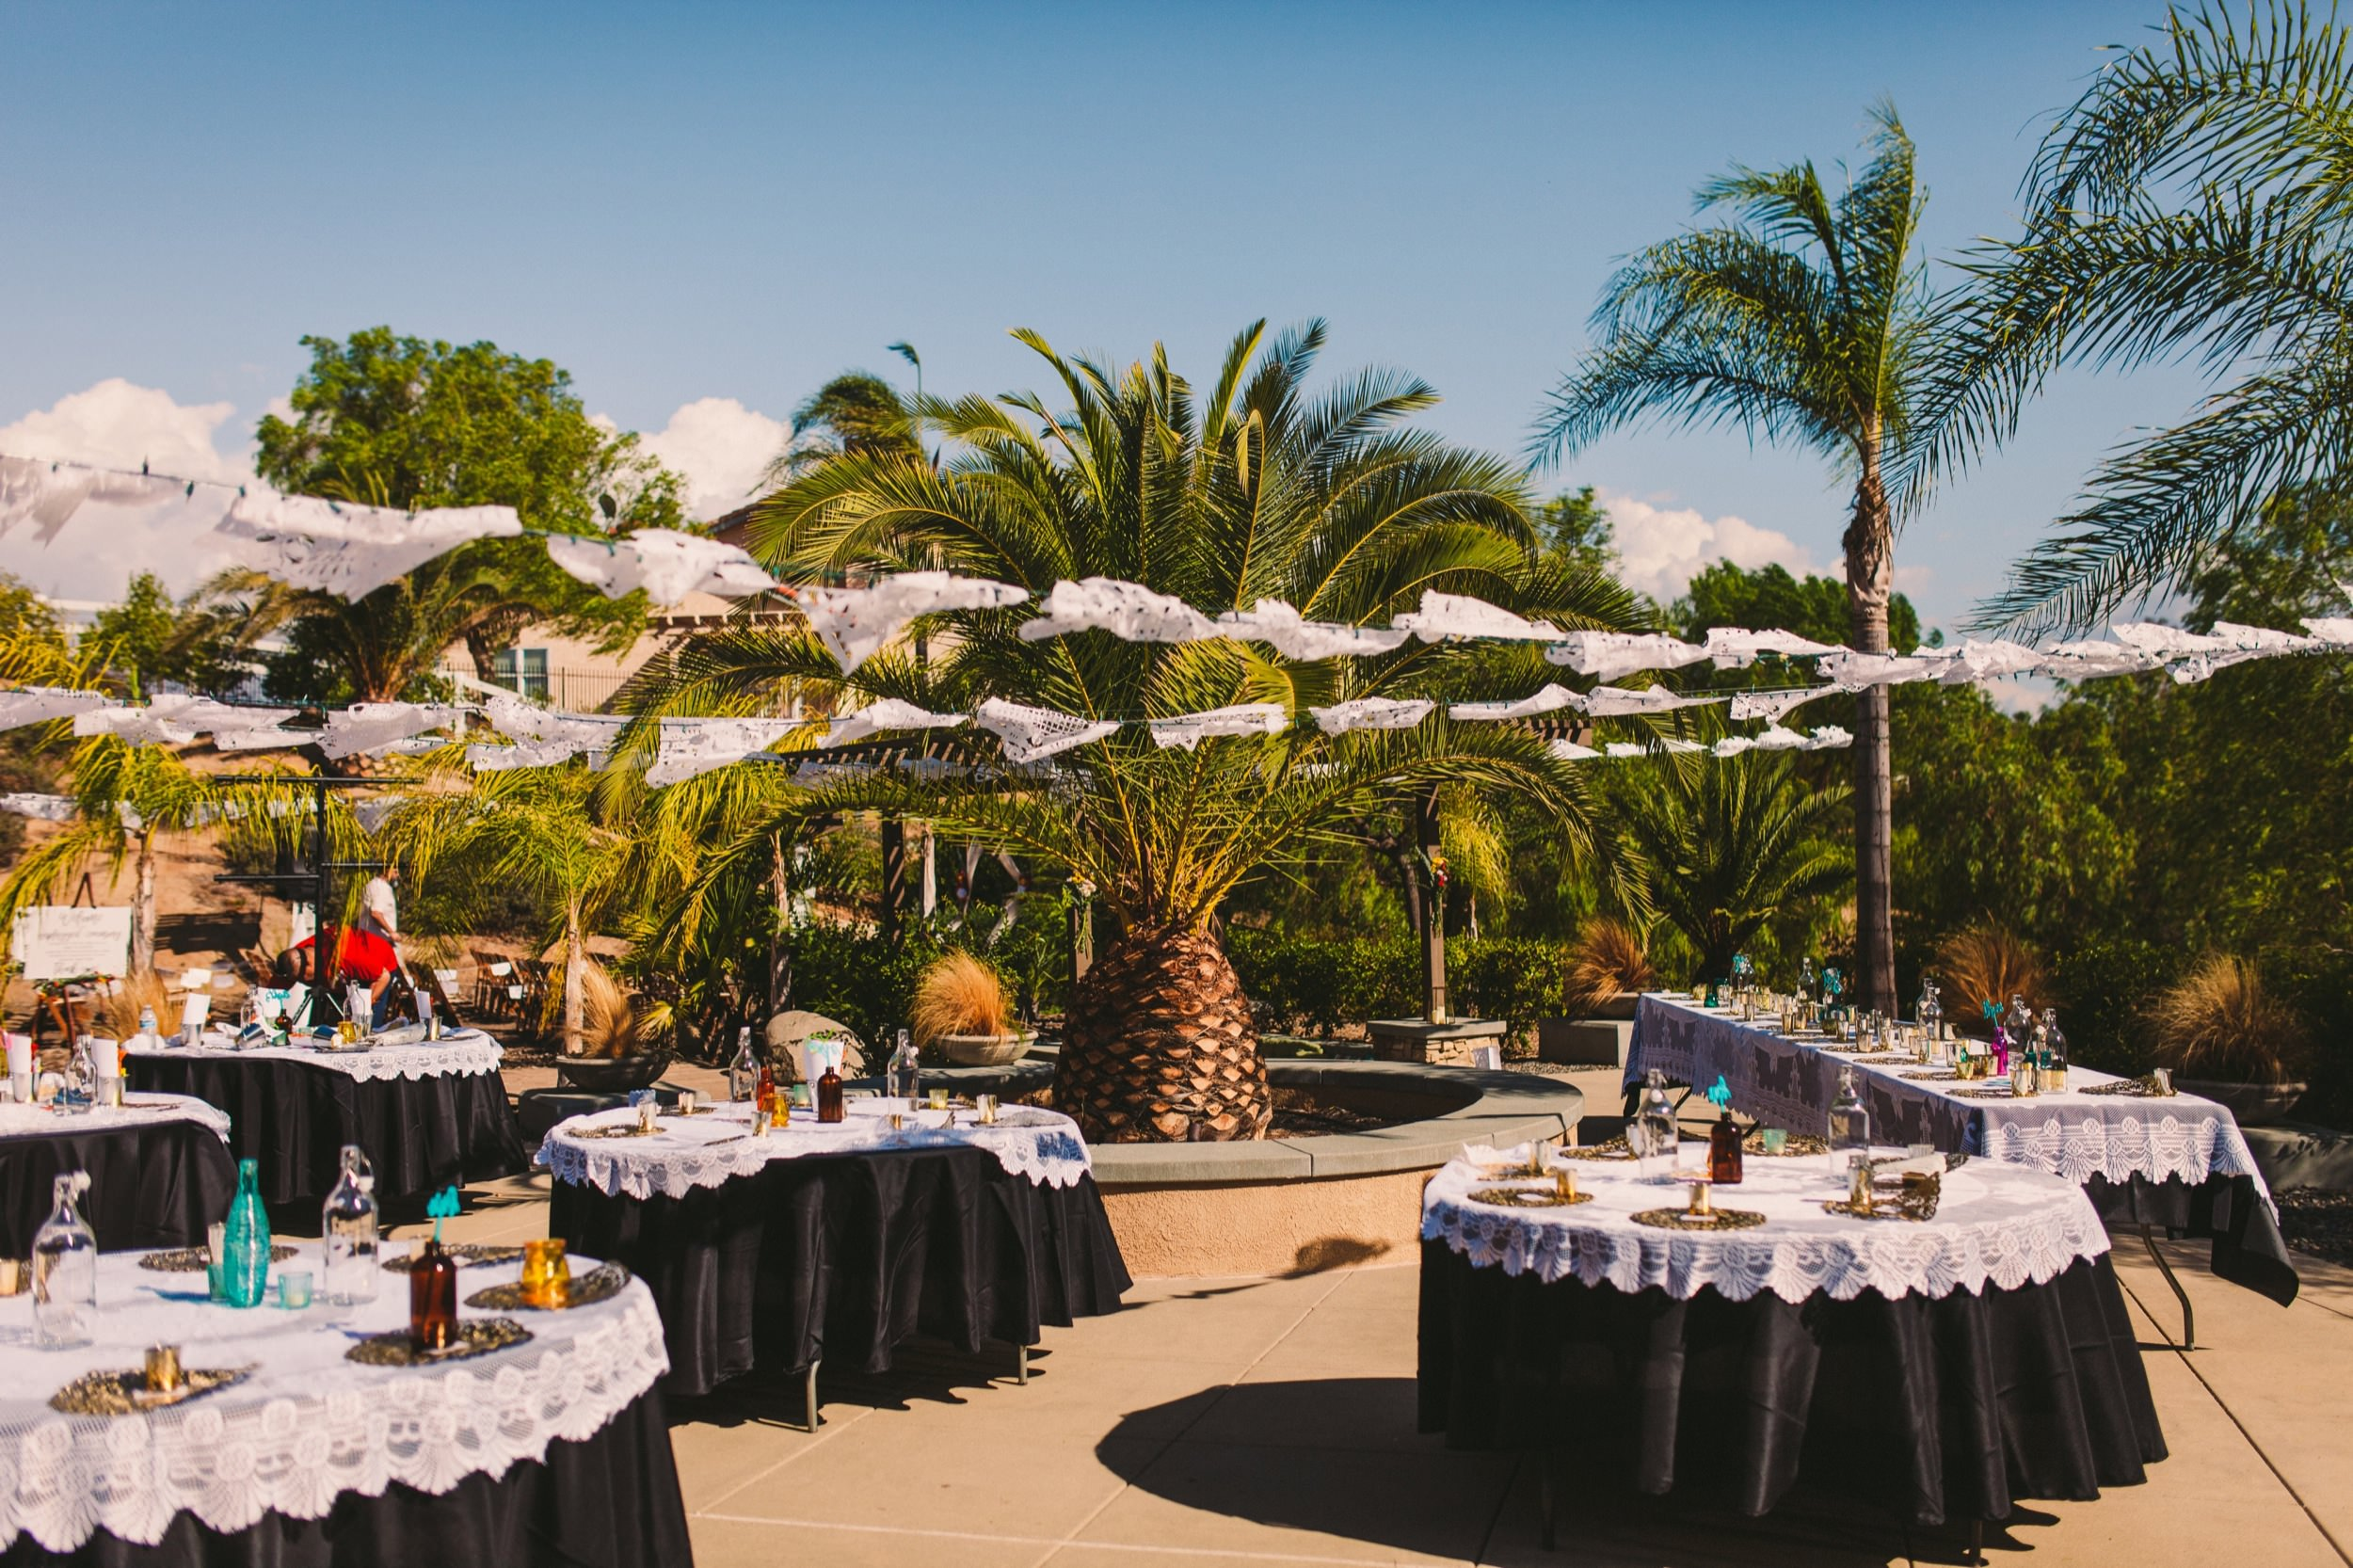 Intimate, Relaxed & Colorful Wedding Photography in Temecula-4.jpg